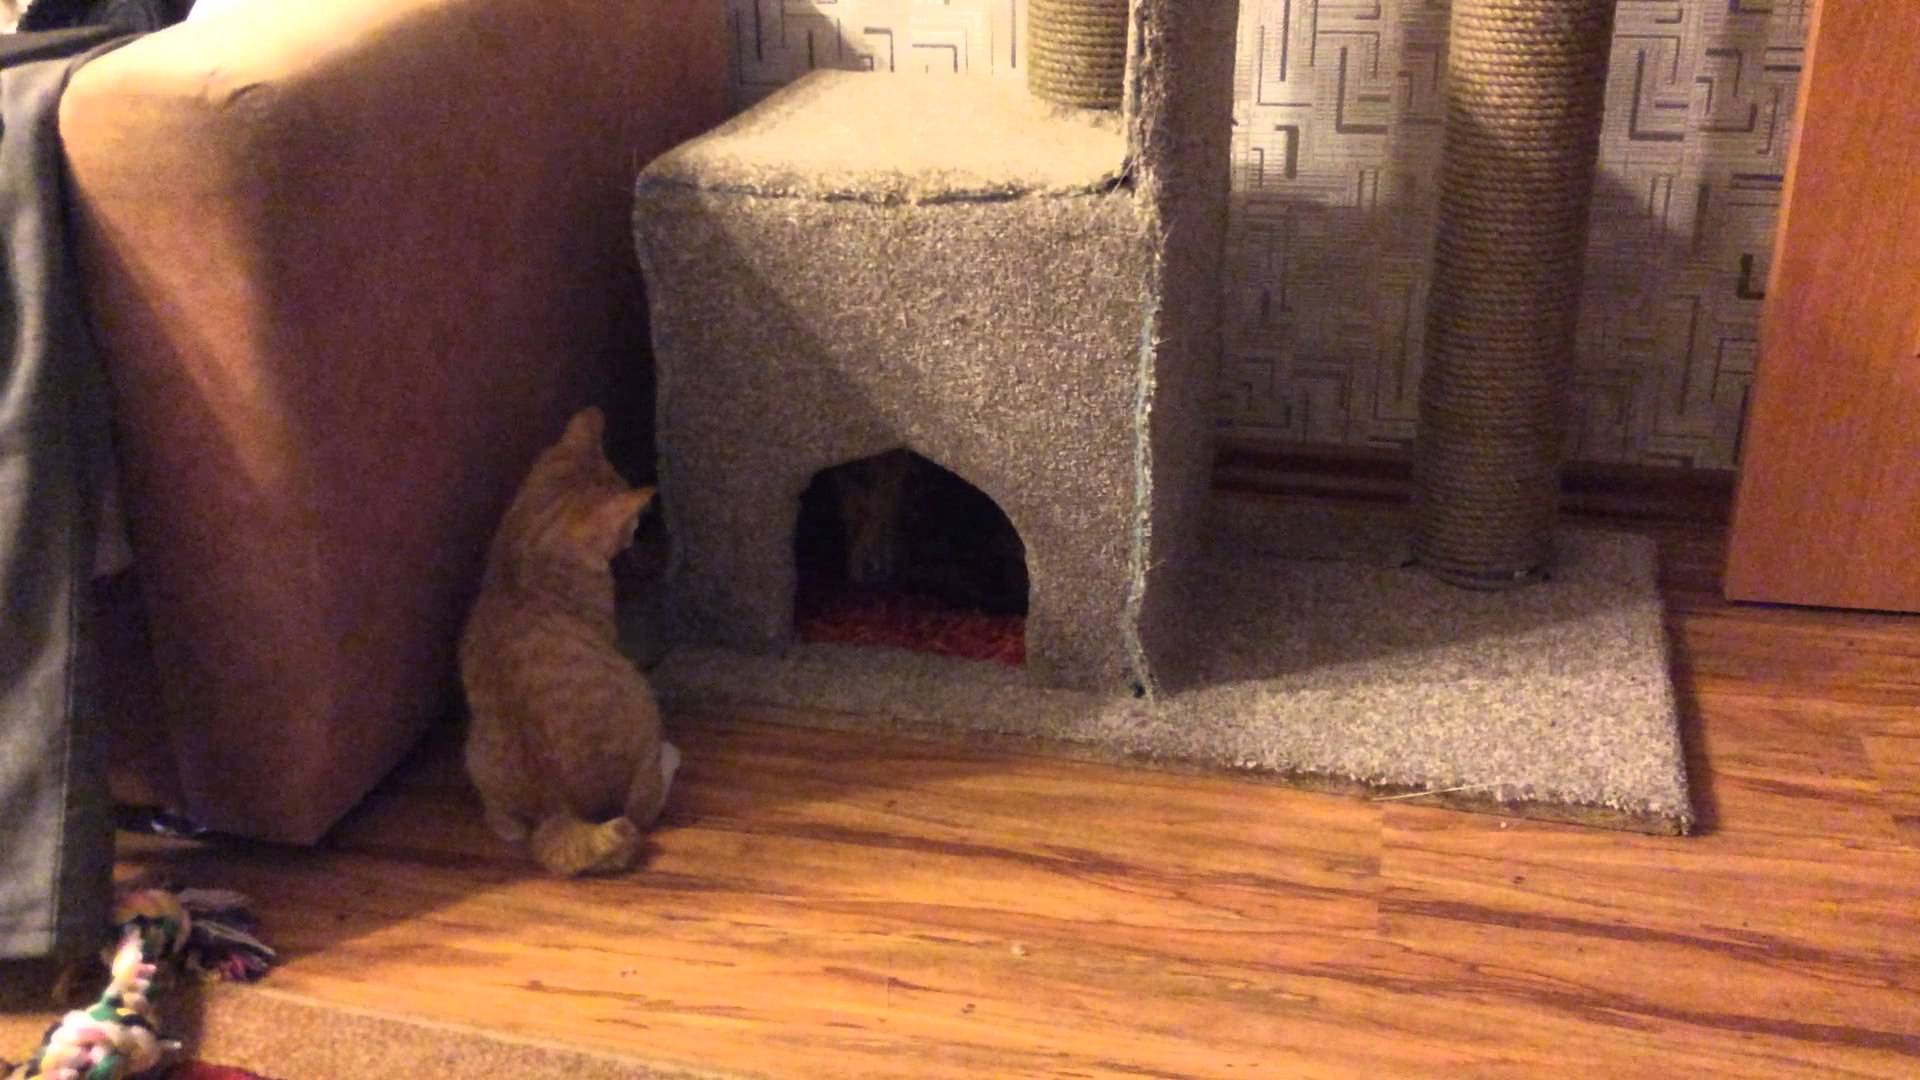 Determined Kitten Stakes Claim to His Kitty Condo When a Persistent Dachshund Repeatedly Takes Up Residence